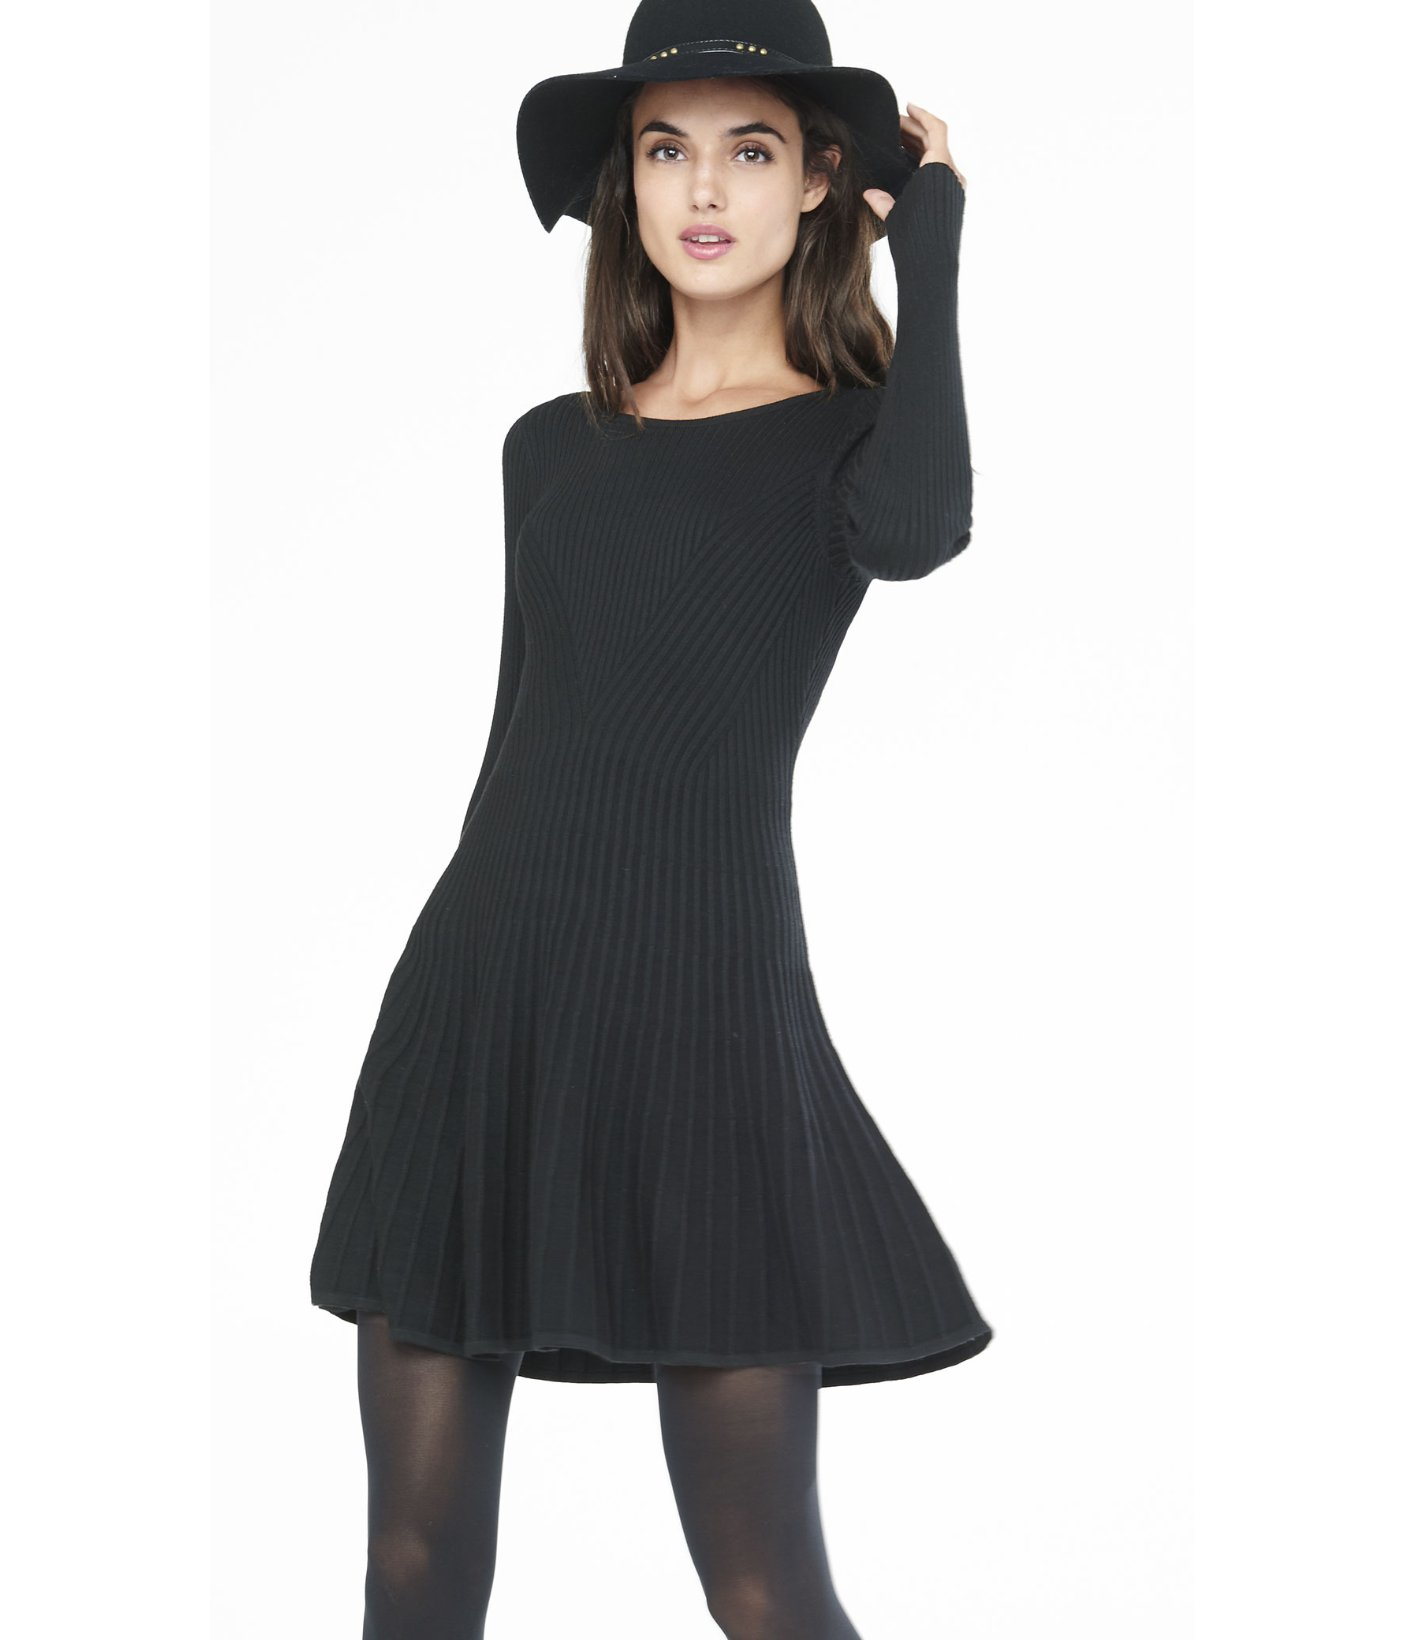 8bd4ce24ad4 Express Black Ribbed Fit And Flare Sweater Dress in Black - Lyst